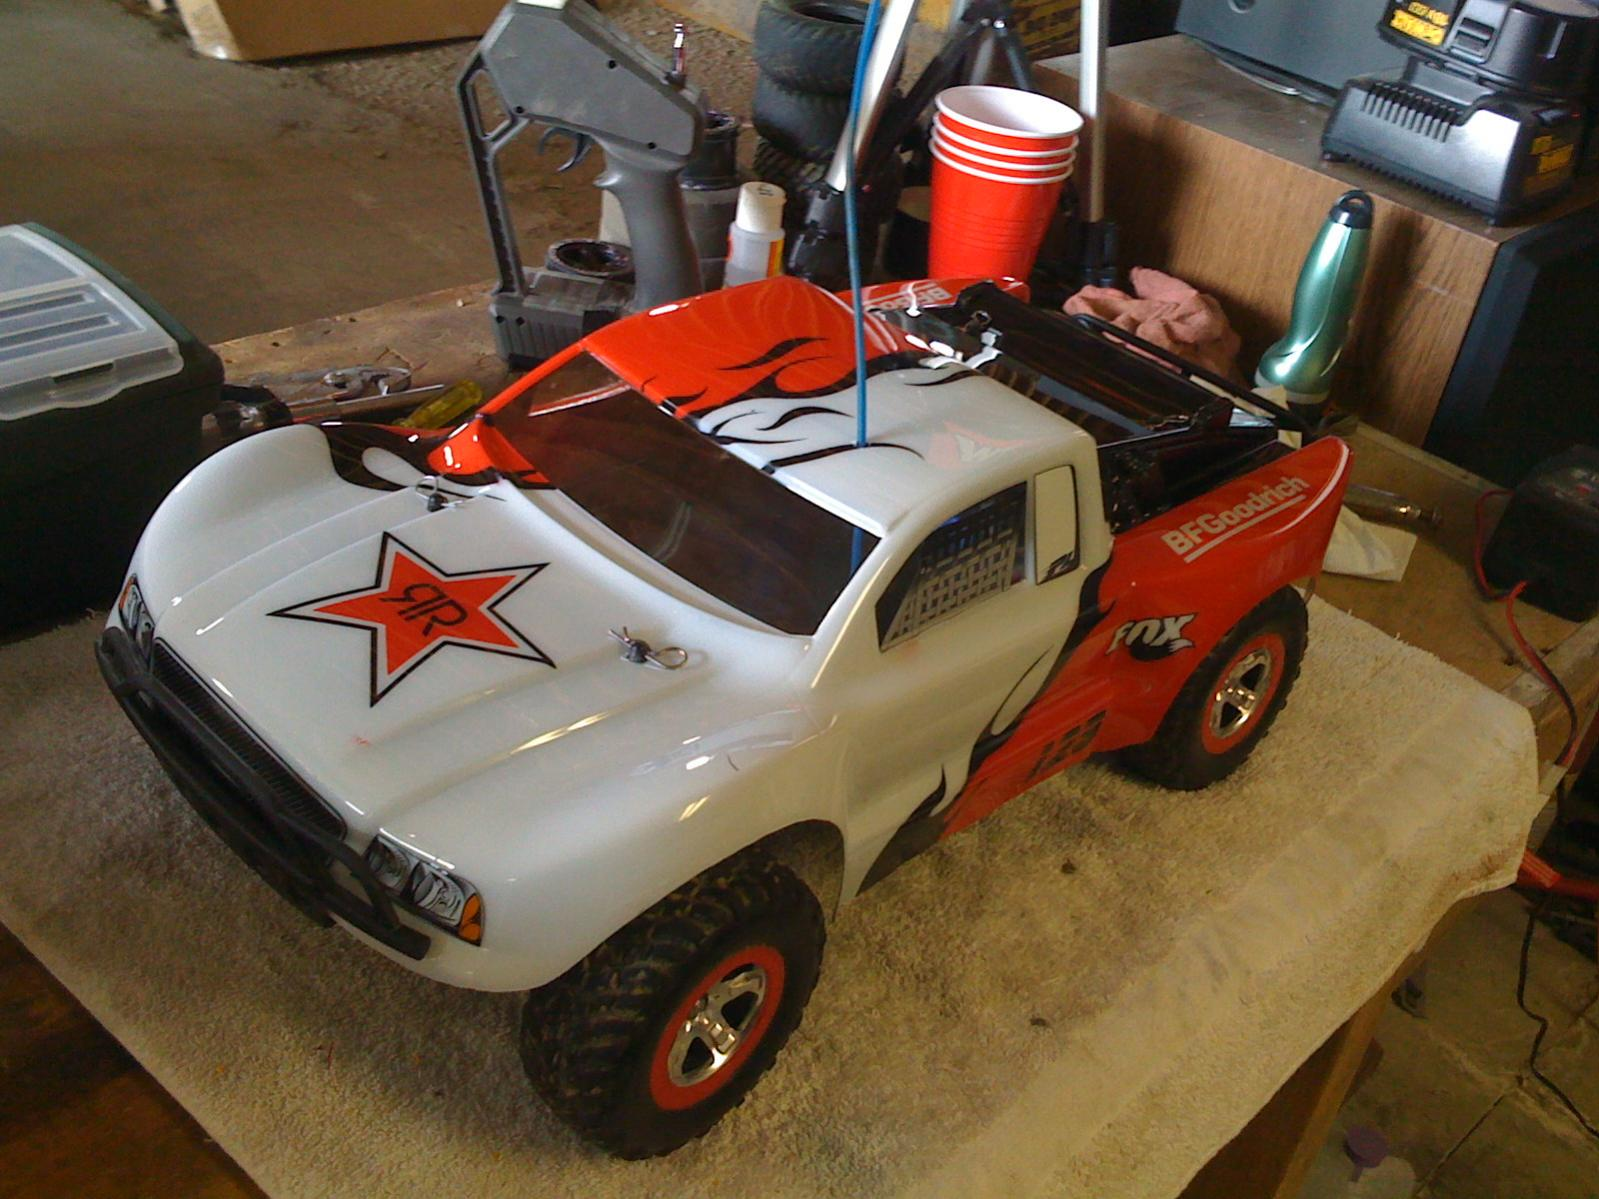 Car Paint Design Ideas traxxas slash paint ideas img_0447jpg Traxxas Slash Paint Ideas Img_0447jpg